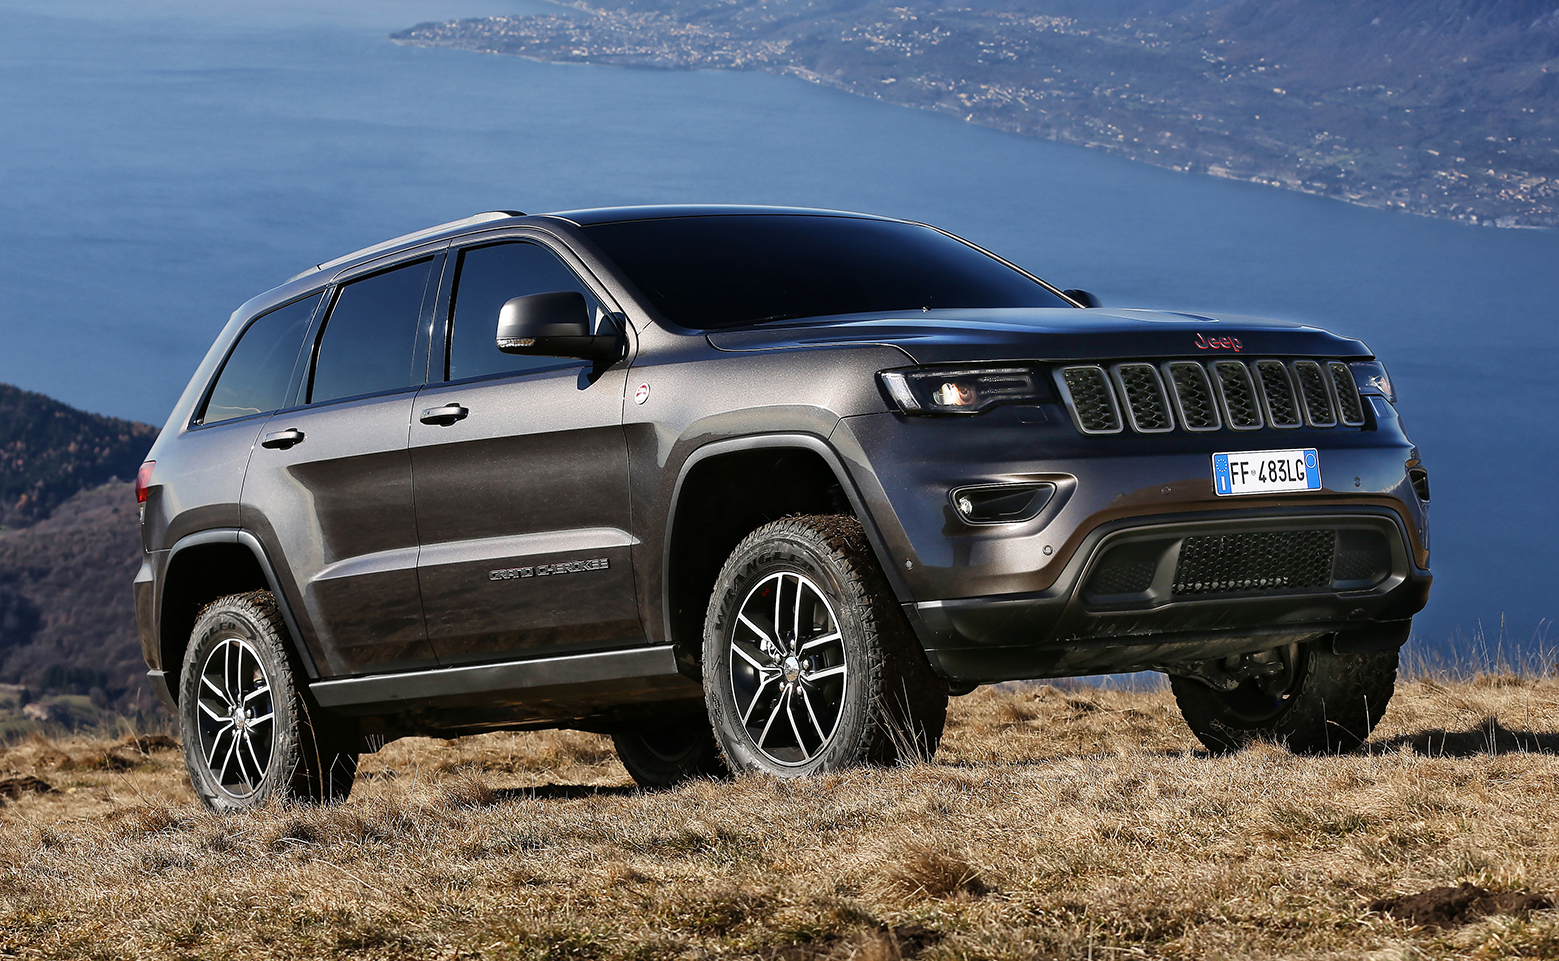 jeep grand cherokee my17 arriva in italia con la trailhawk motorage new generation. Black Bedroom Furniture Sets. Home Design Ideas